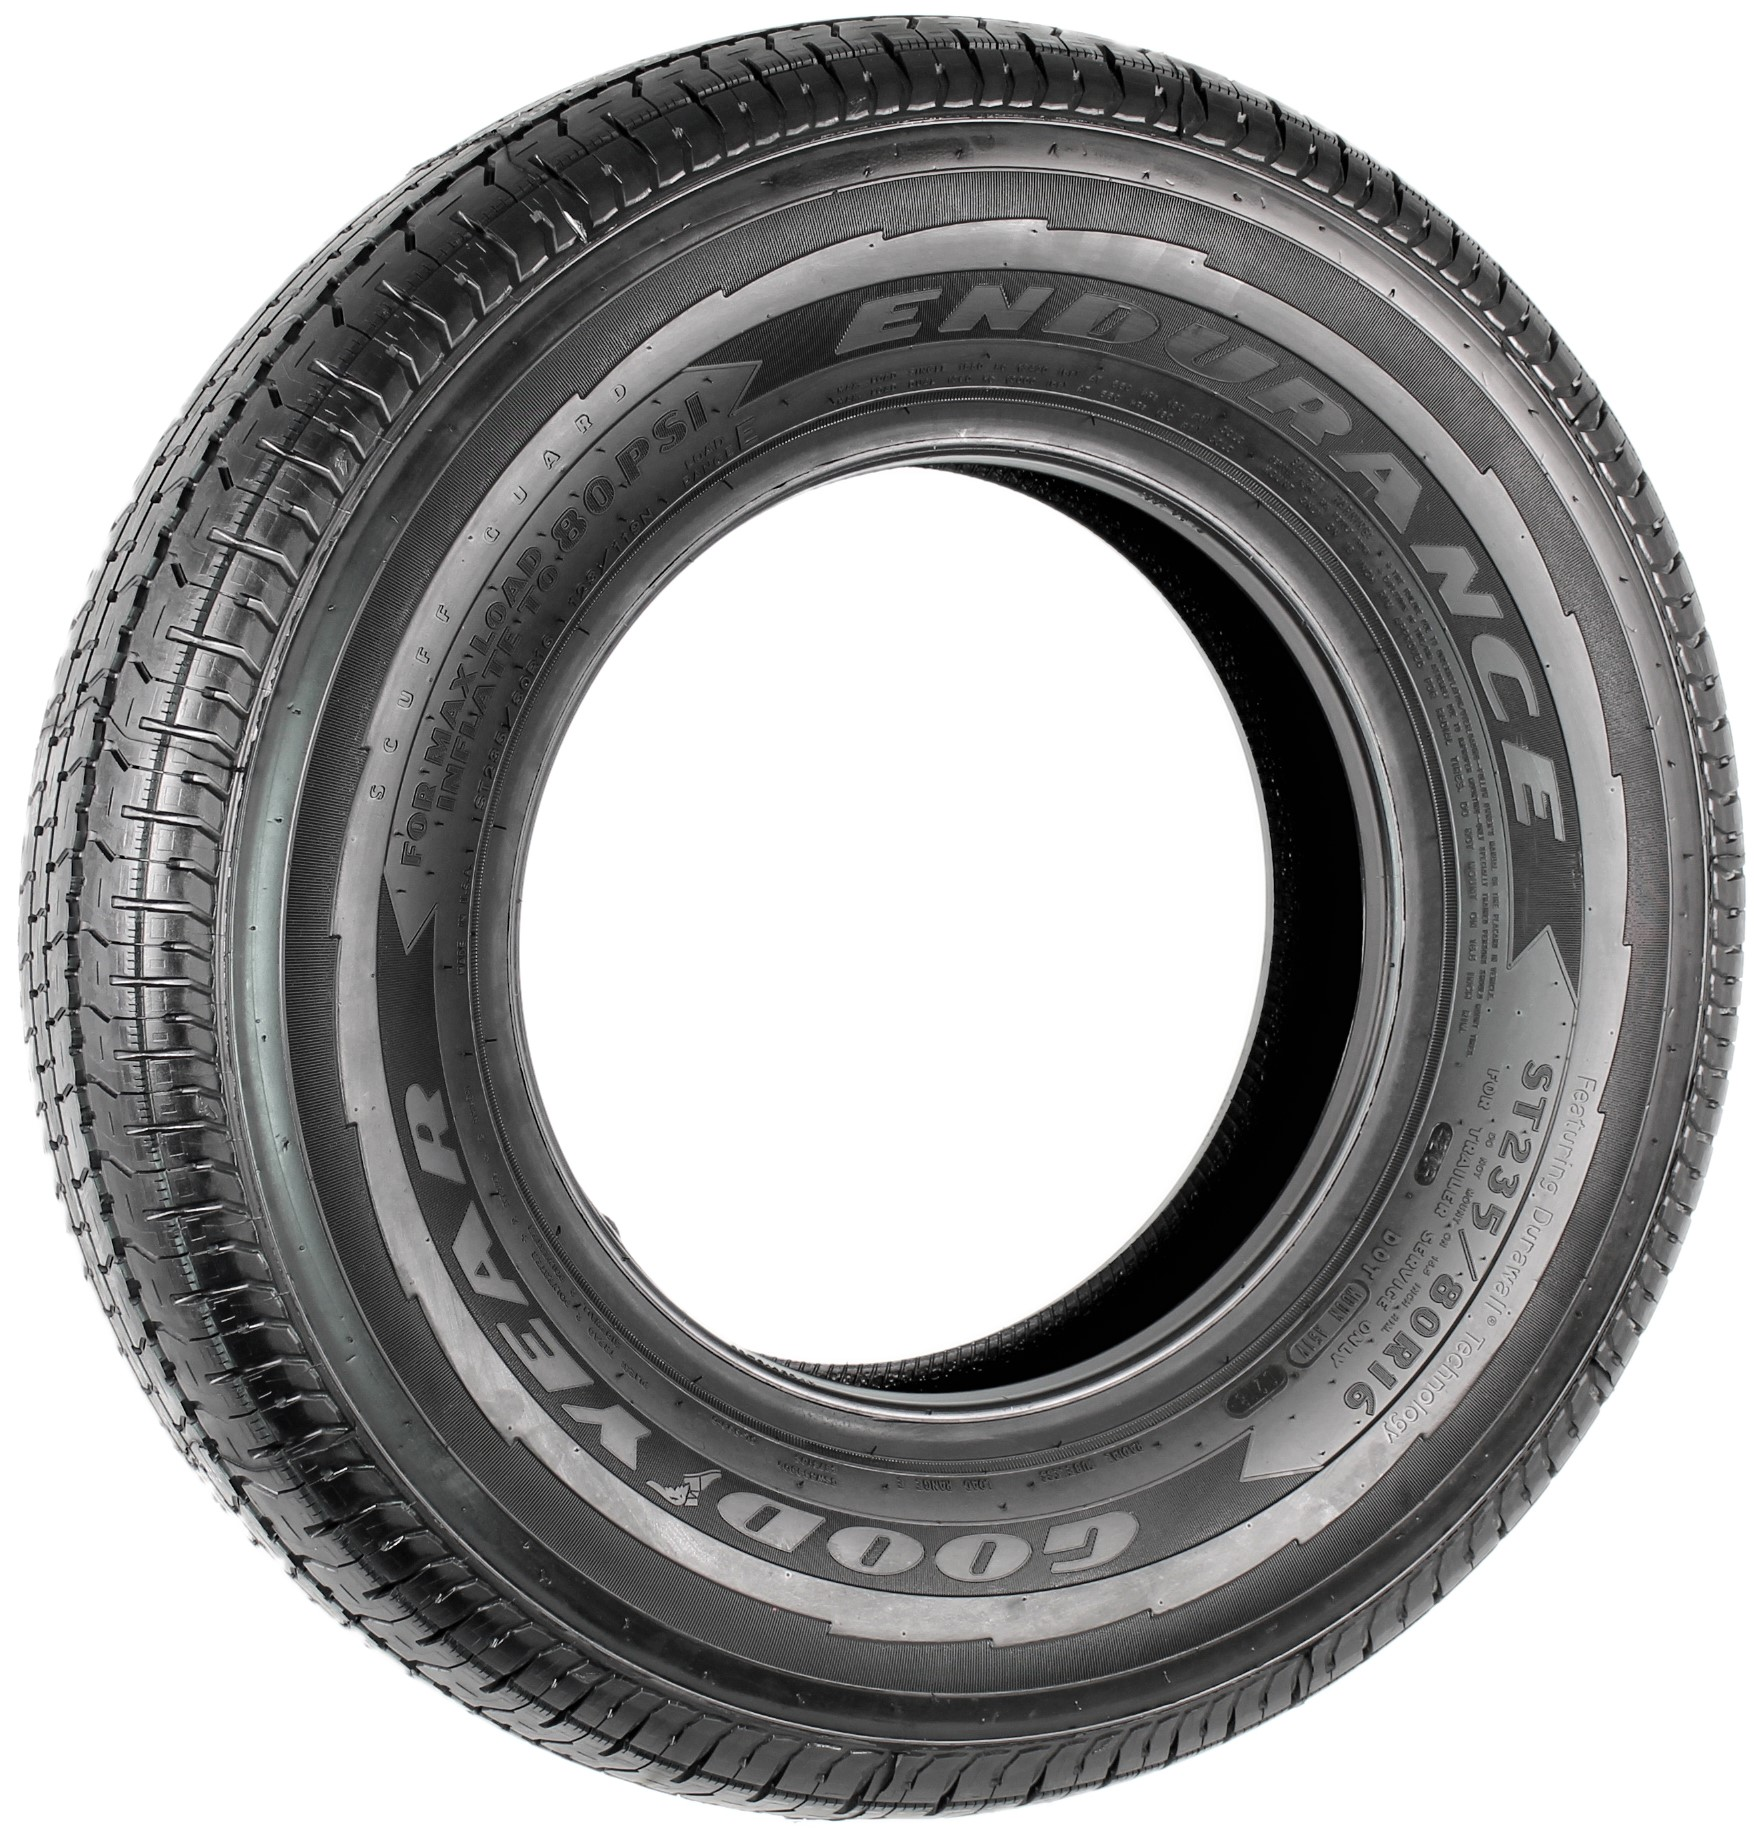 Goodyear Endurance ST235/80R16 LRE Radial Trailer Tire Image